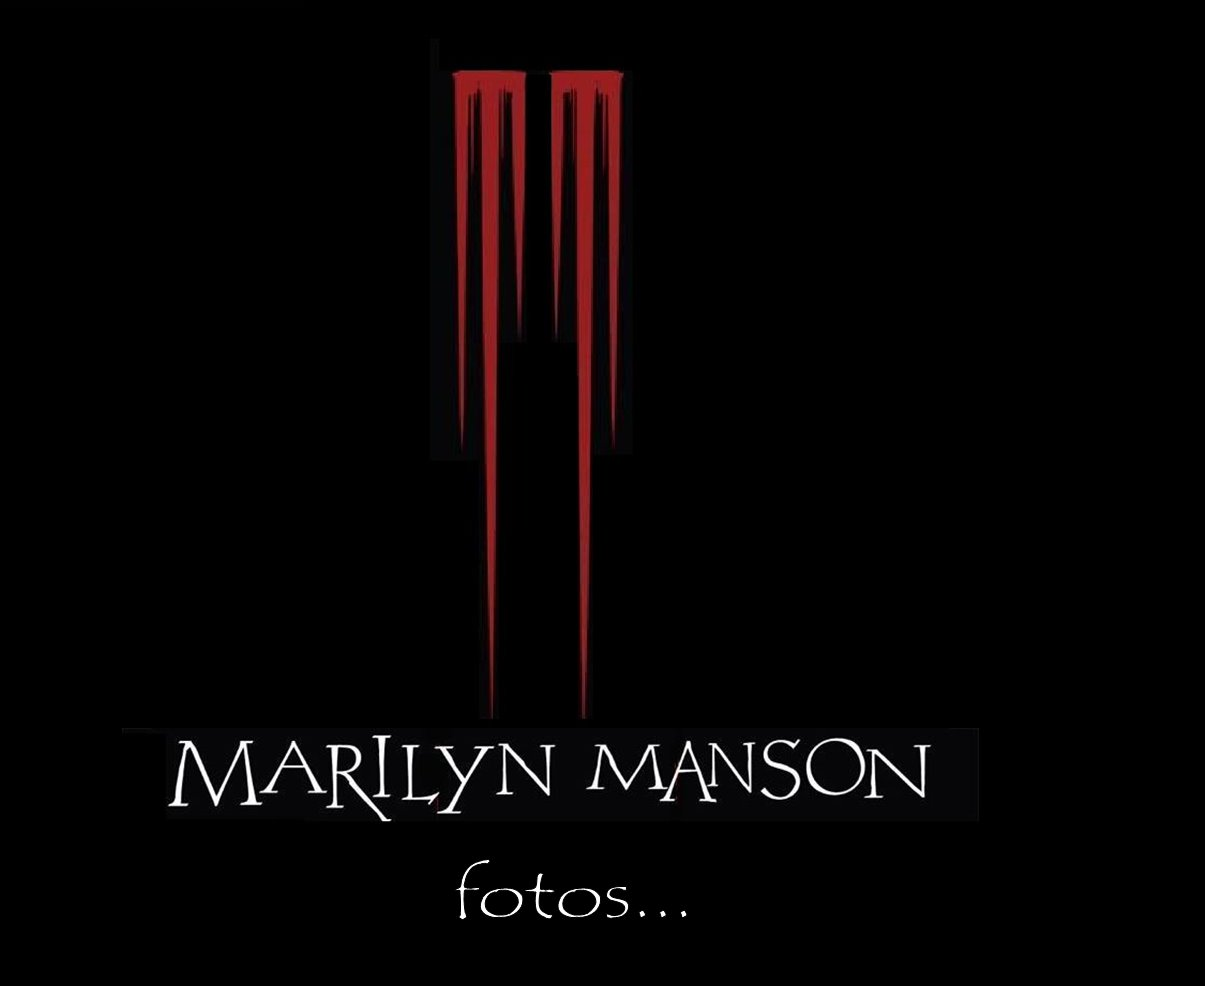 how marilyn manson inspires me The official marilyn manson music videos play all marilyn manson limited edition vinyl + merch bundles: spotify:.